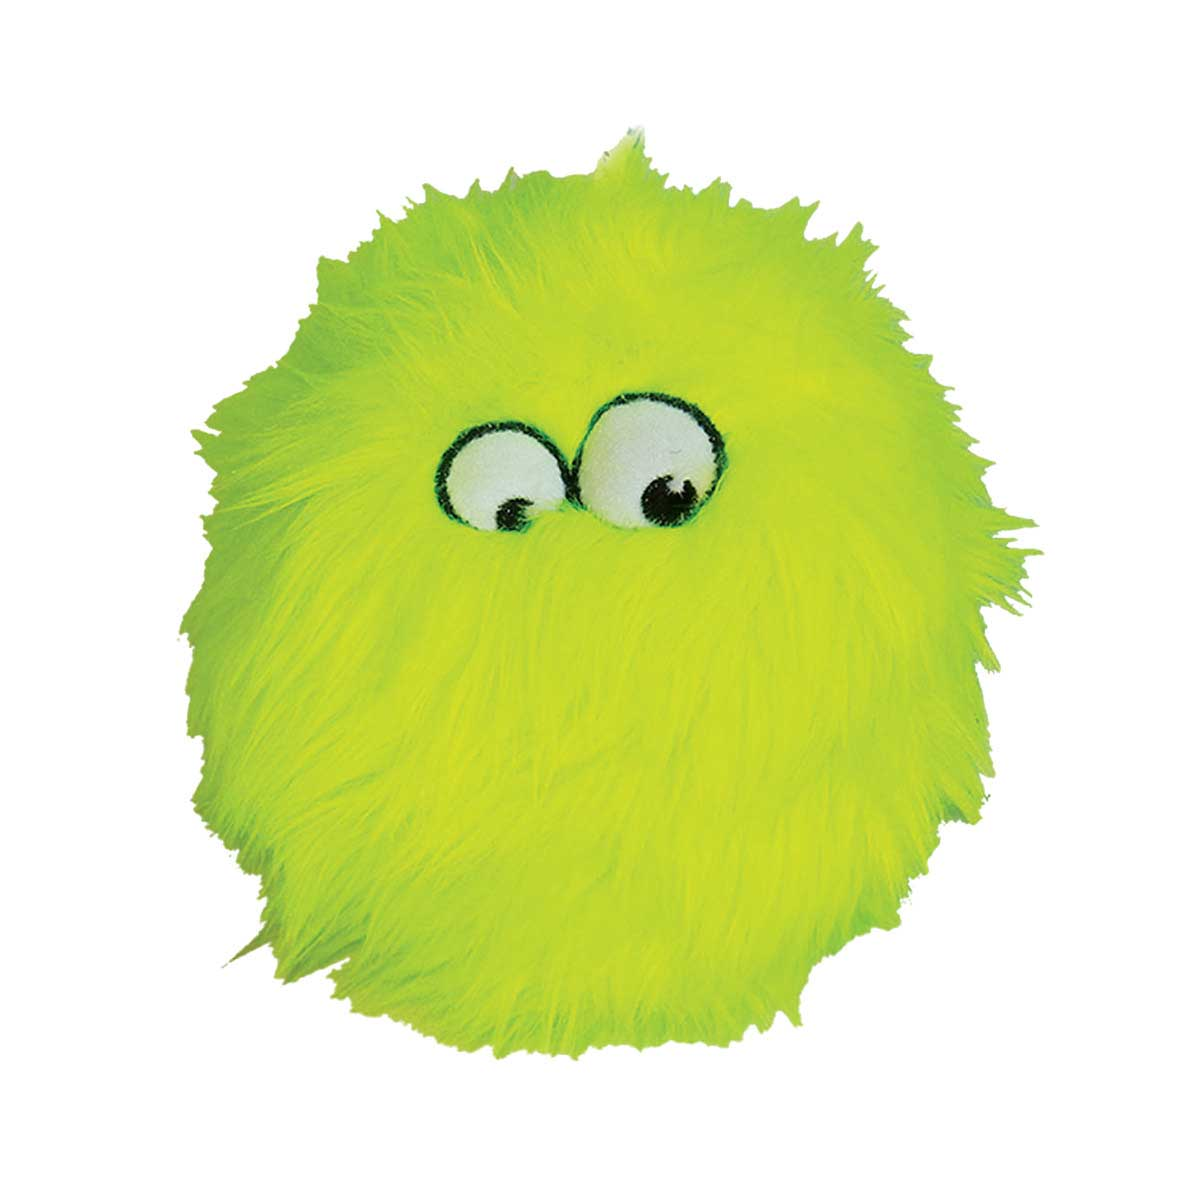 goDog Just For Me Lime Furballz Dog Toy With Chew Guard 3 inch